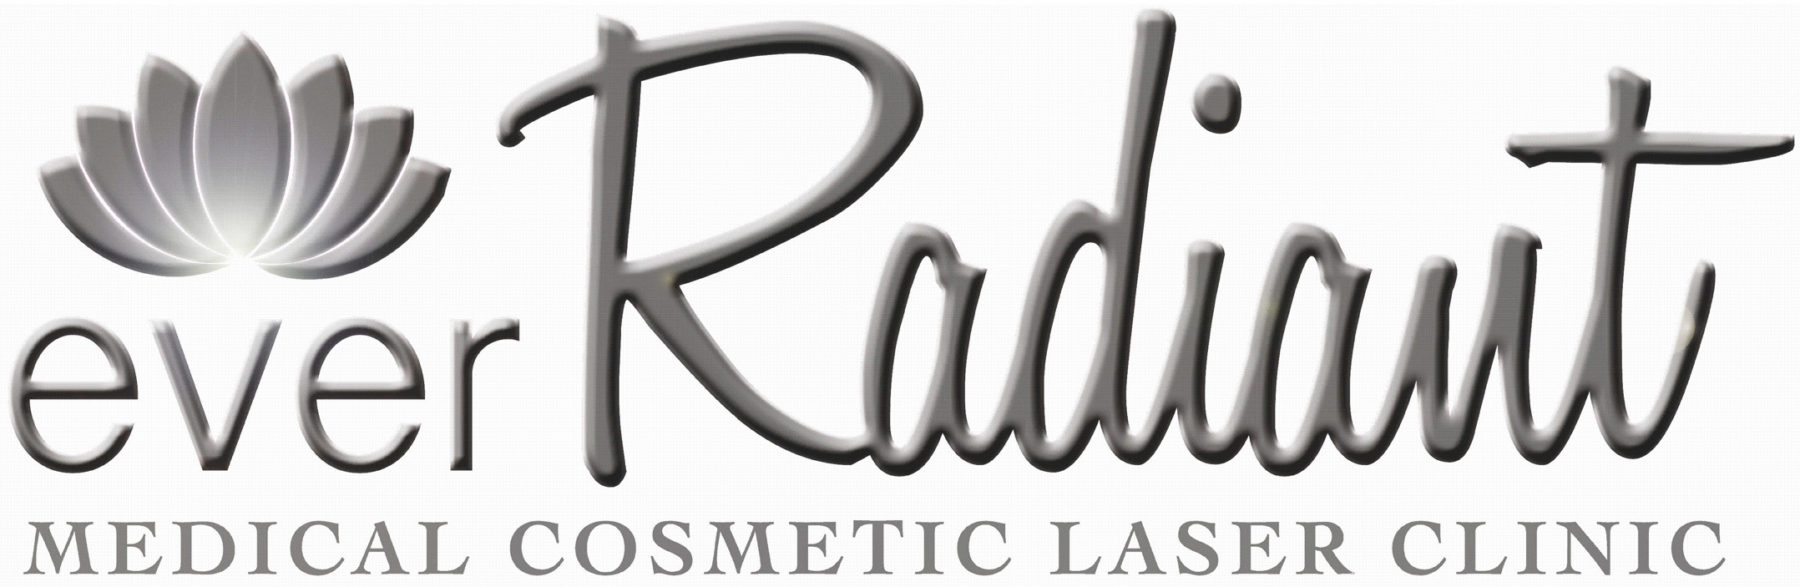 Ever Radiant Medical Cosmetic Laser Clinic logo